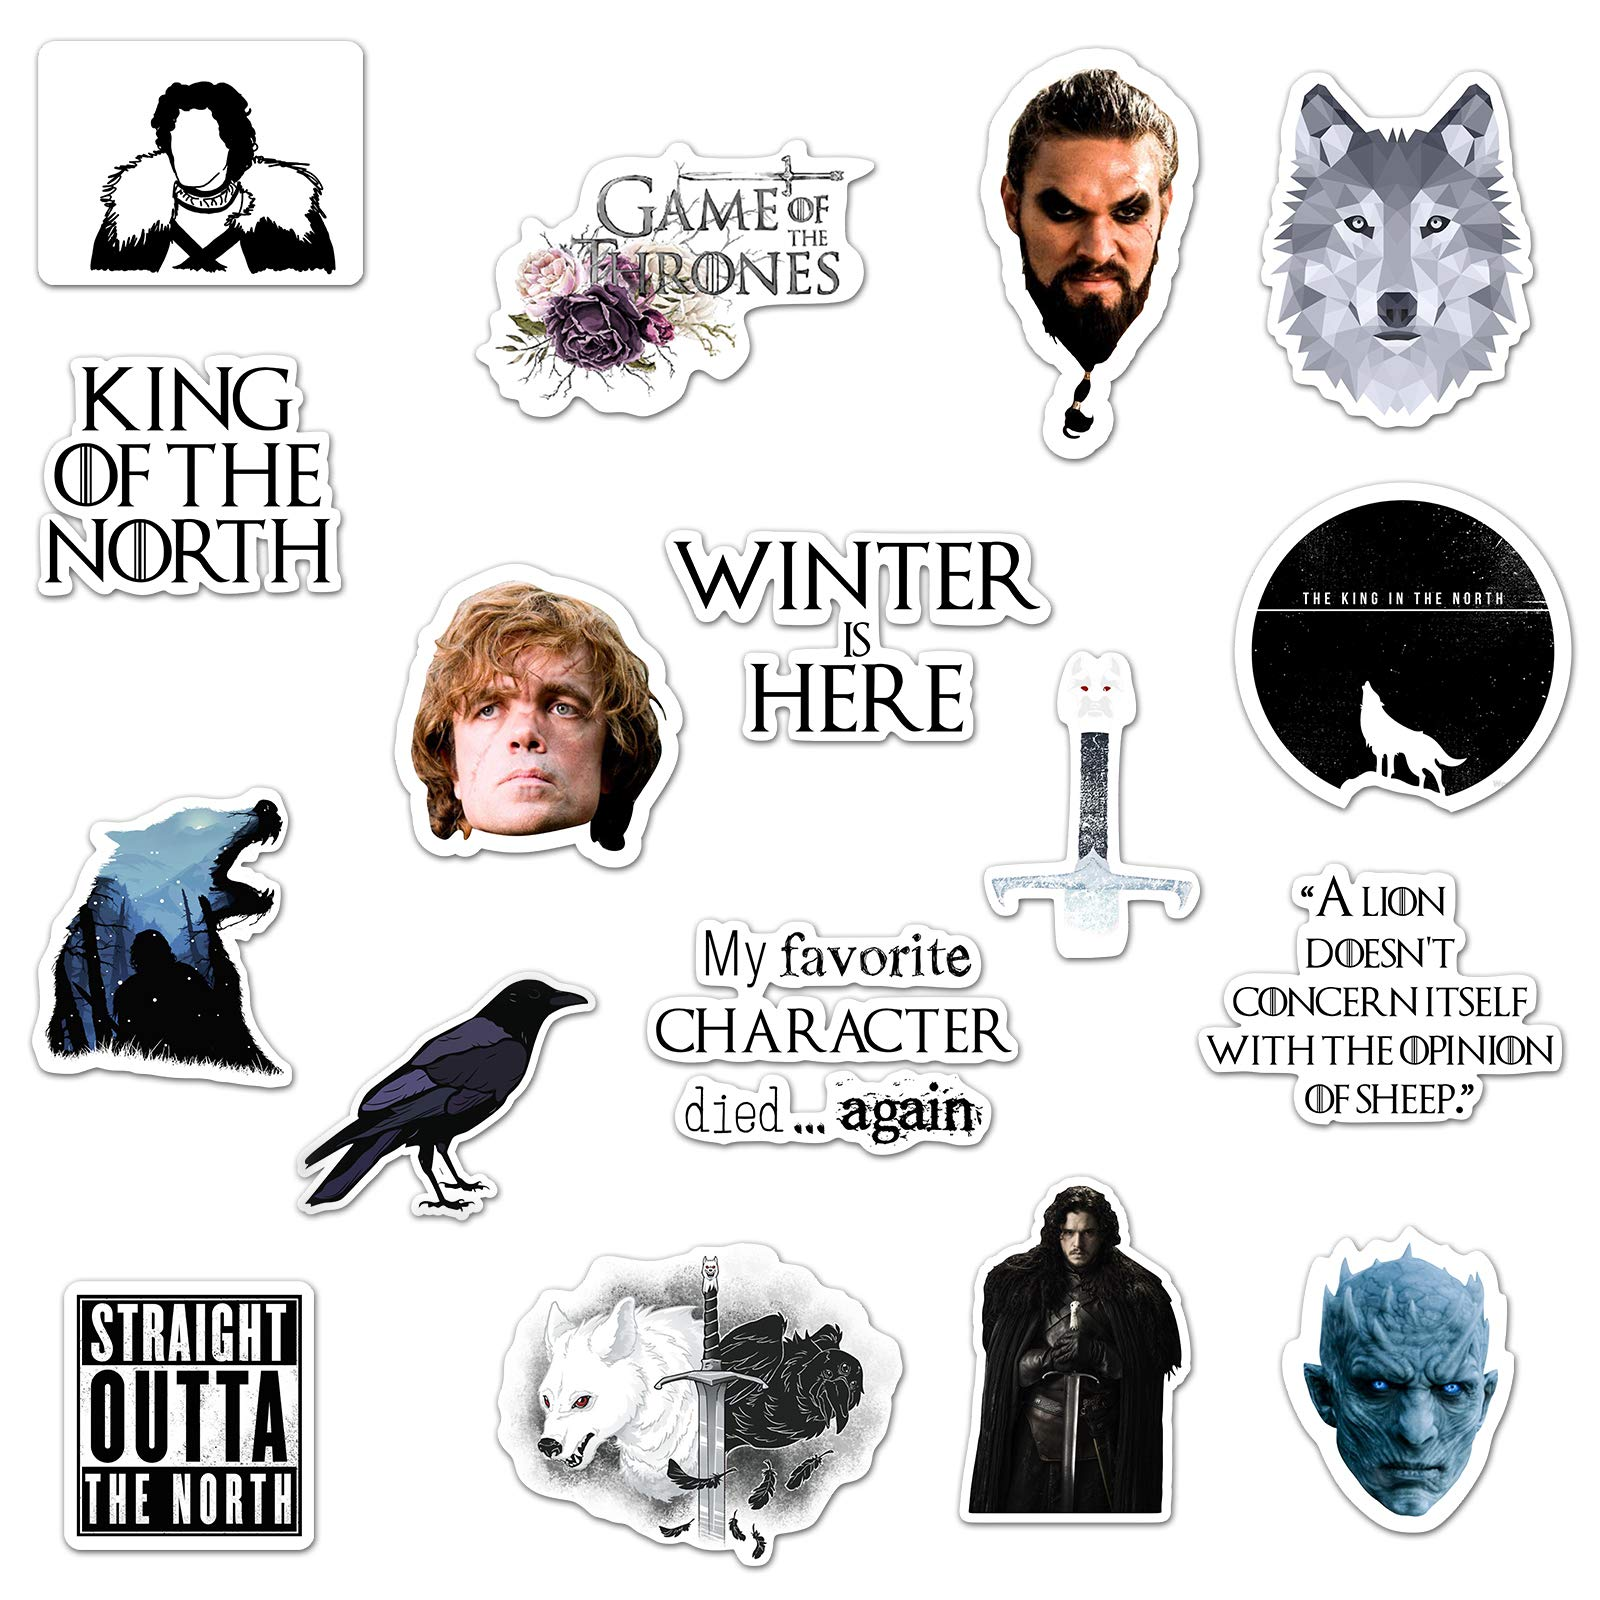 (17 Pack) Game of Thrones Laptop Stickers for Adults, Game of Thrones Merchandise and Gifts, Redbubble Stickers for Teens - Laptop Decals & Stickers for Water Bottles, Hydro Flask Stickers